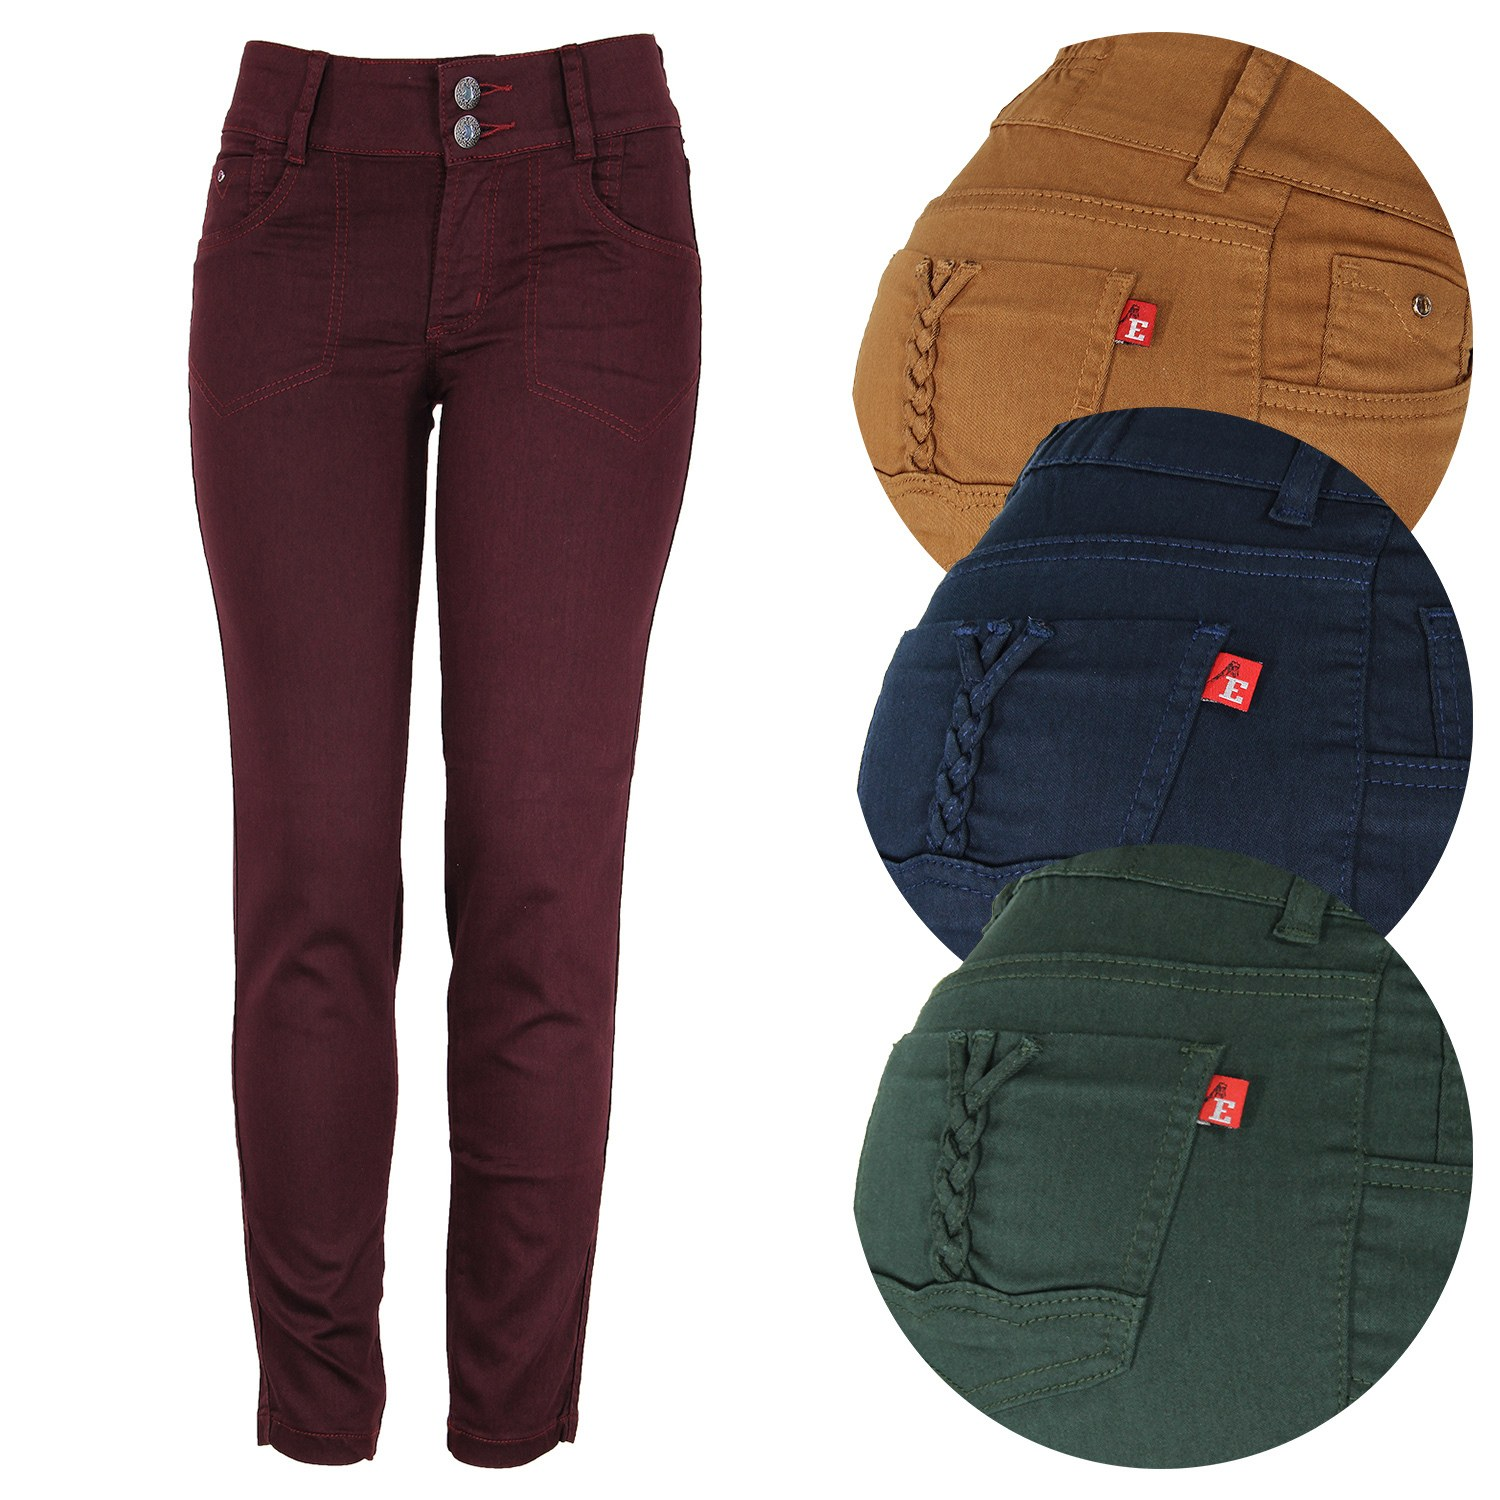 Cigarrete Eruption Jeans Color Andreia [52221]